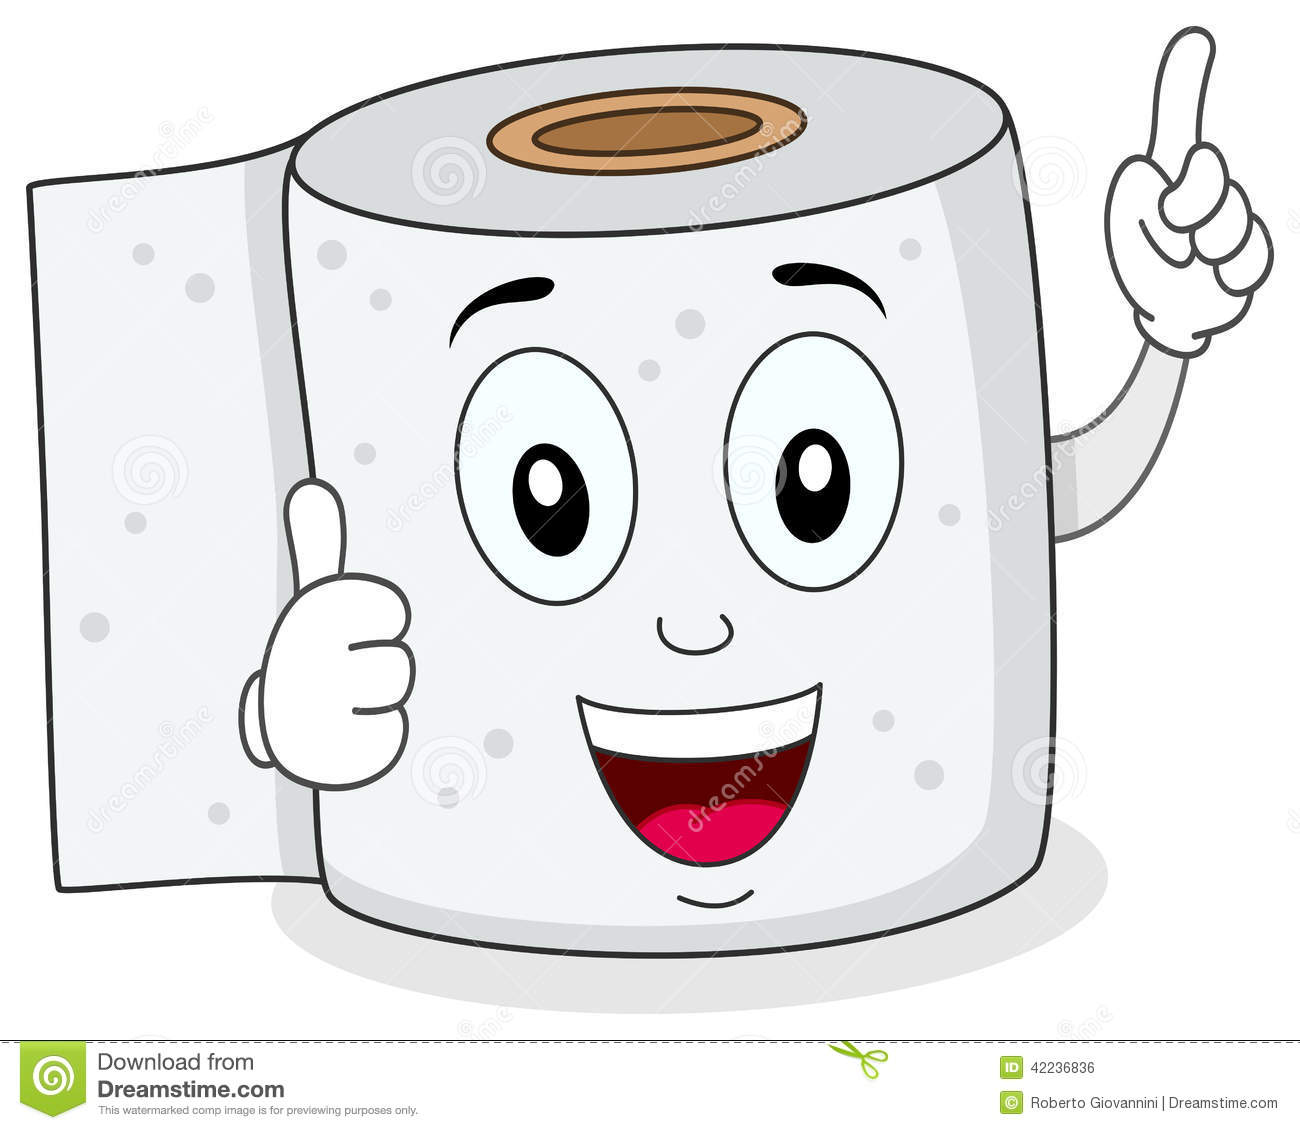 Todd Clipart 20 Fee Cliparts Download Imagenes: Toilet Paper Clipart 20 Free Cliparts